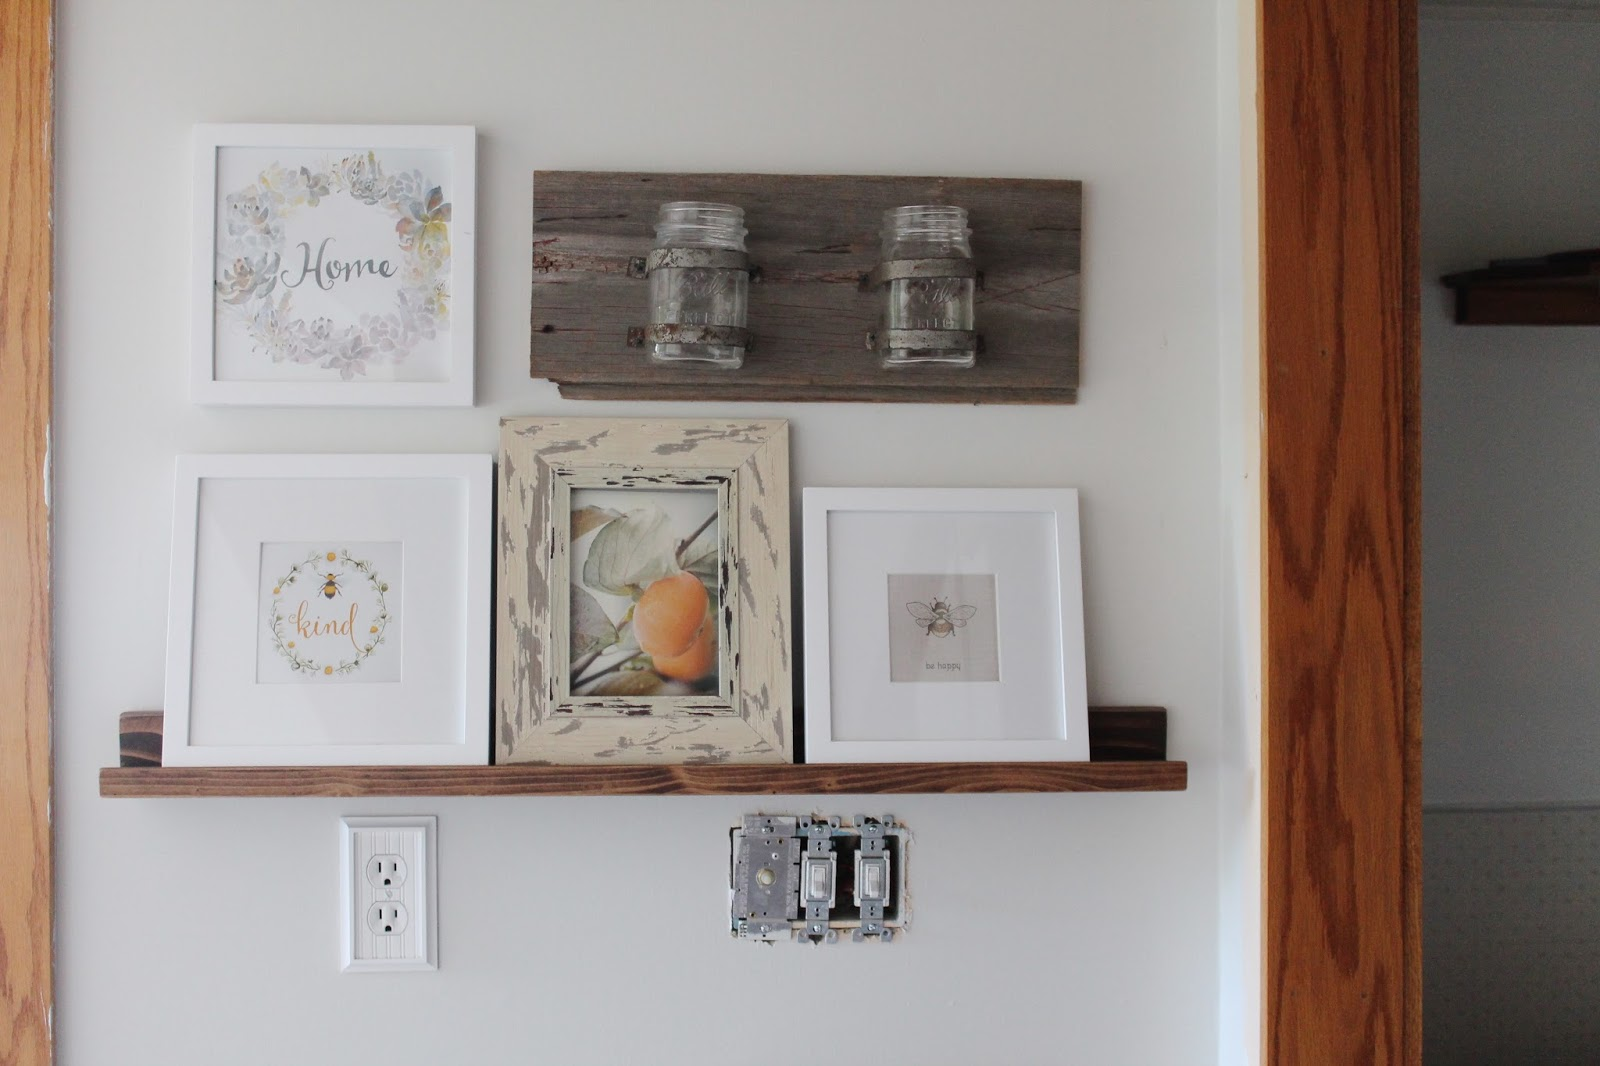 Two And A Few Frames I Also Decided To Incorporate A Purchase I Made Over The Summer From The Country Living Fair Put All That Together